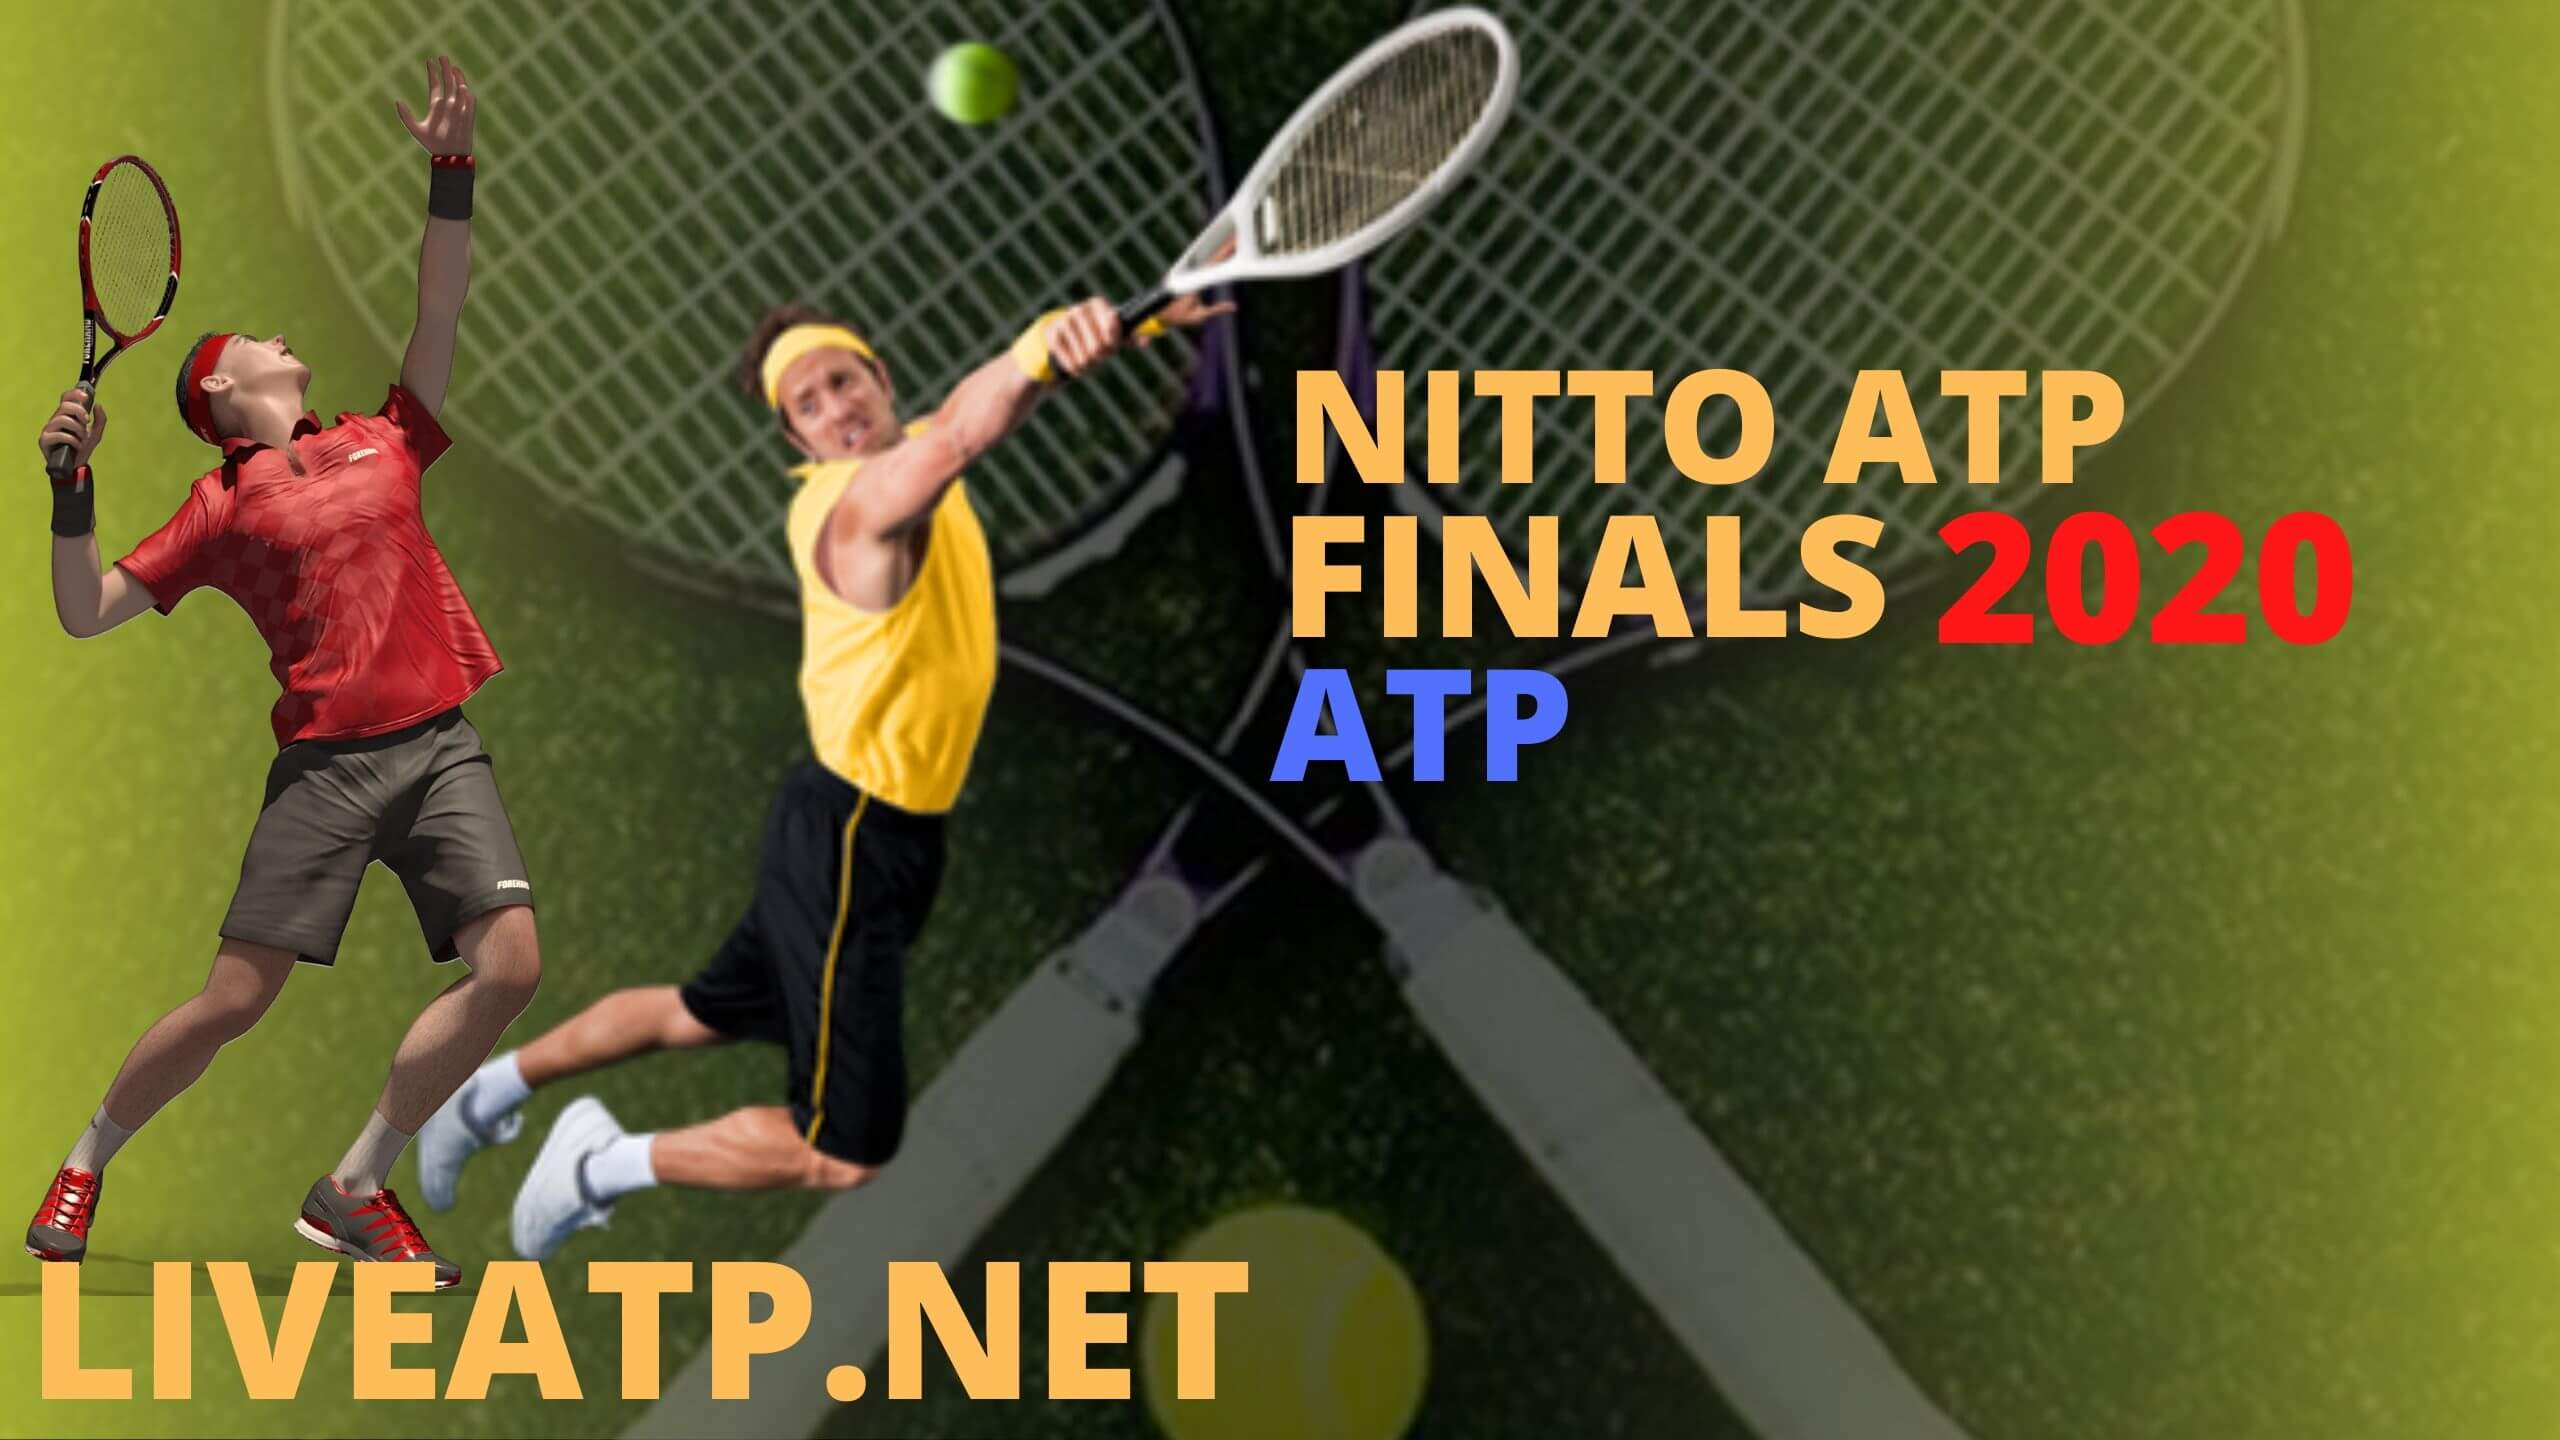 Nitto ATP Finals Live Stream 2020 |  Day 4